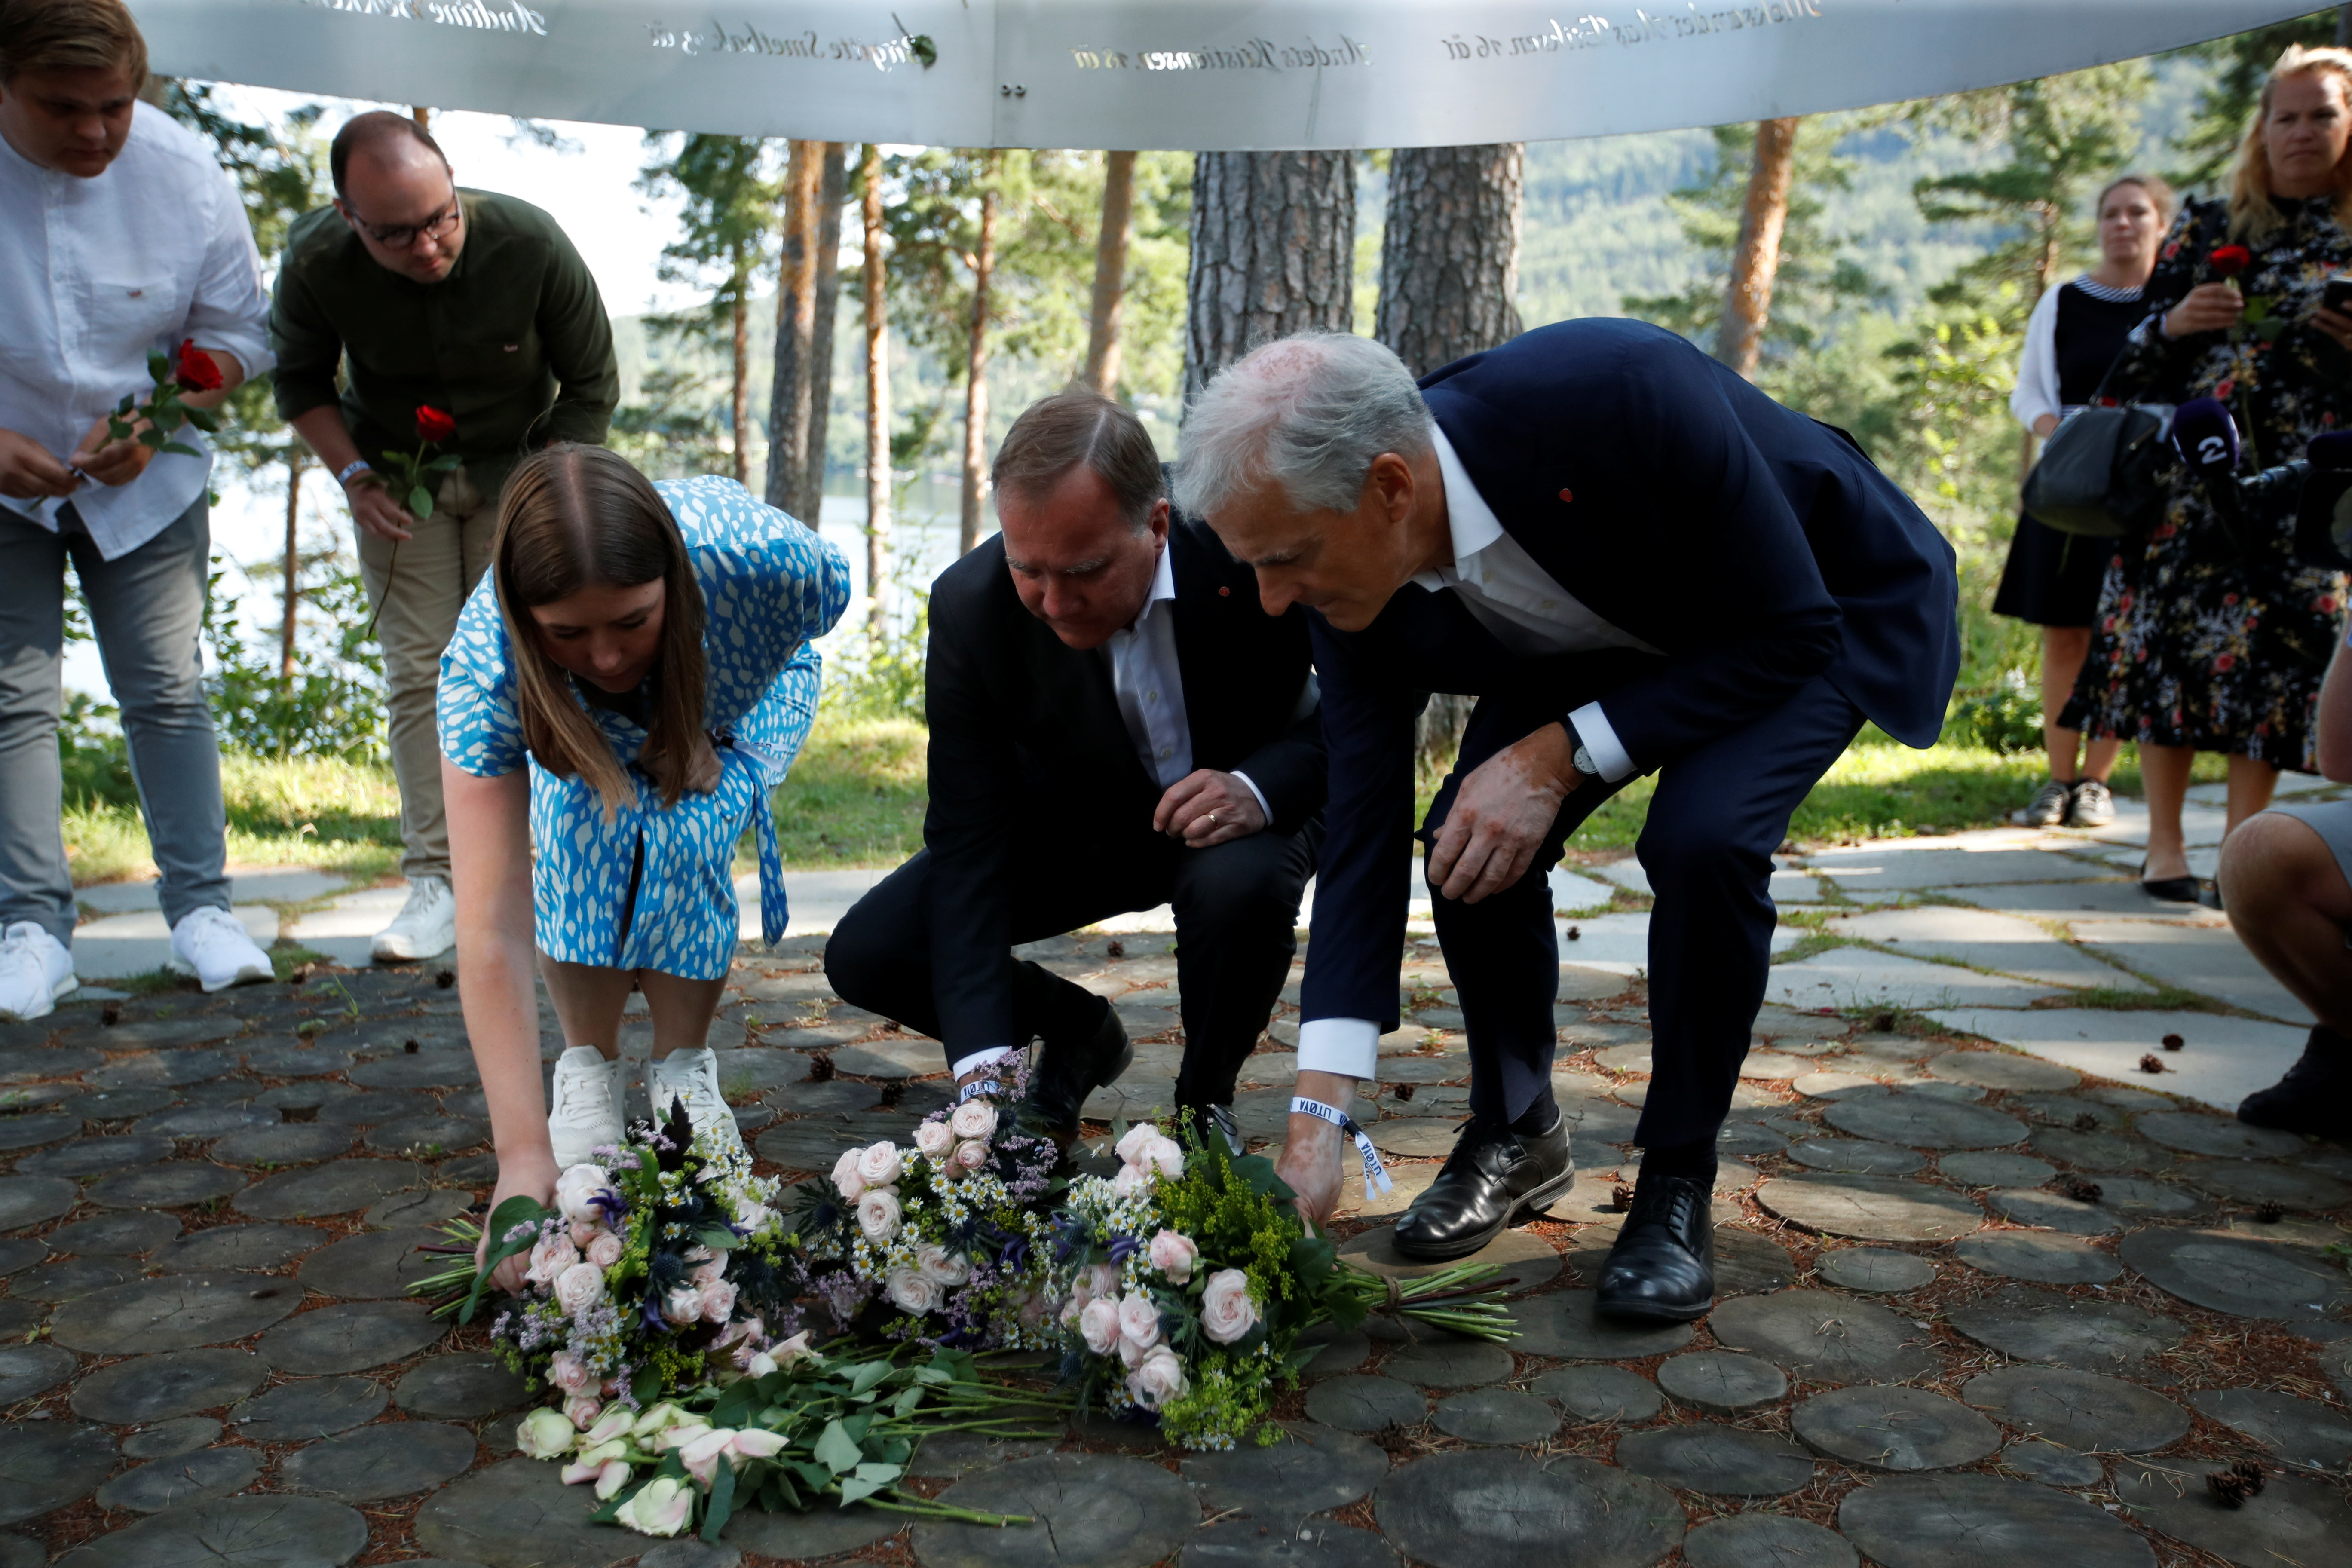 Leader of AUF Party in Norway and a survivor of the 2011 shooting, Astrid Hoem, Prime Minister of Sweden Stefan Lofven and a leader of the Norwegian Labor Party Jonas Gahr Store lay flowers at the memorial on Utoeya island the day before the 10th anniversary of the terrorist attack, in Utoeya, Norway July 21, 2021 Beate Oma Dahle/NTB/via REUTERS